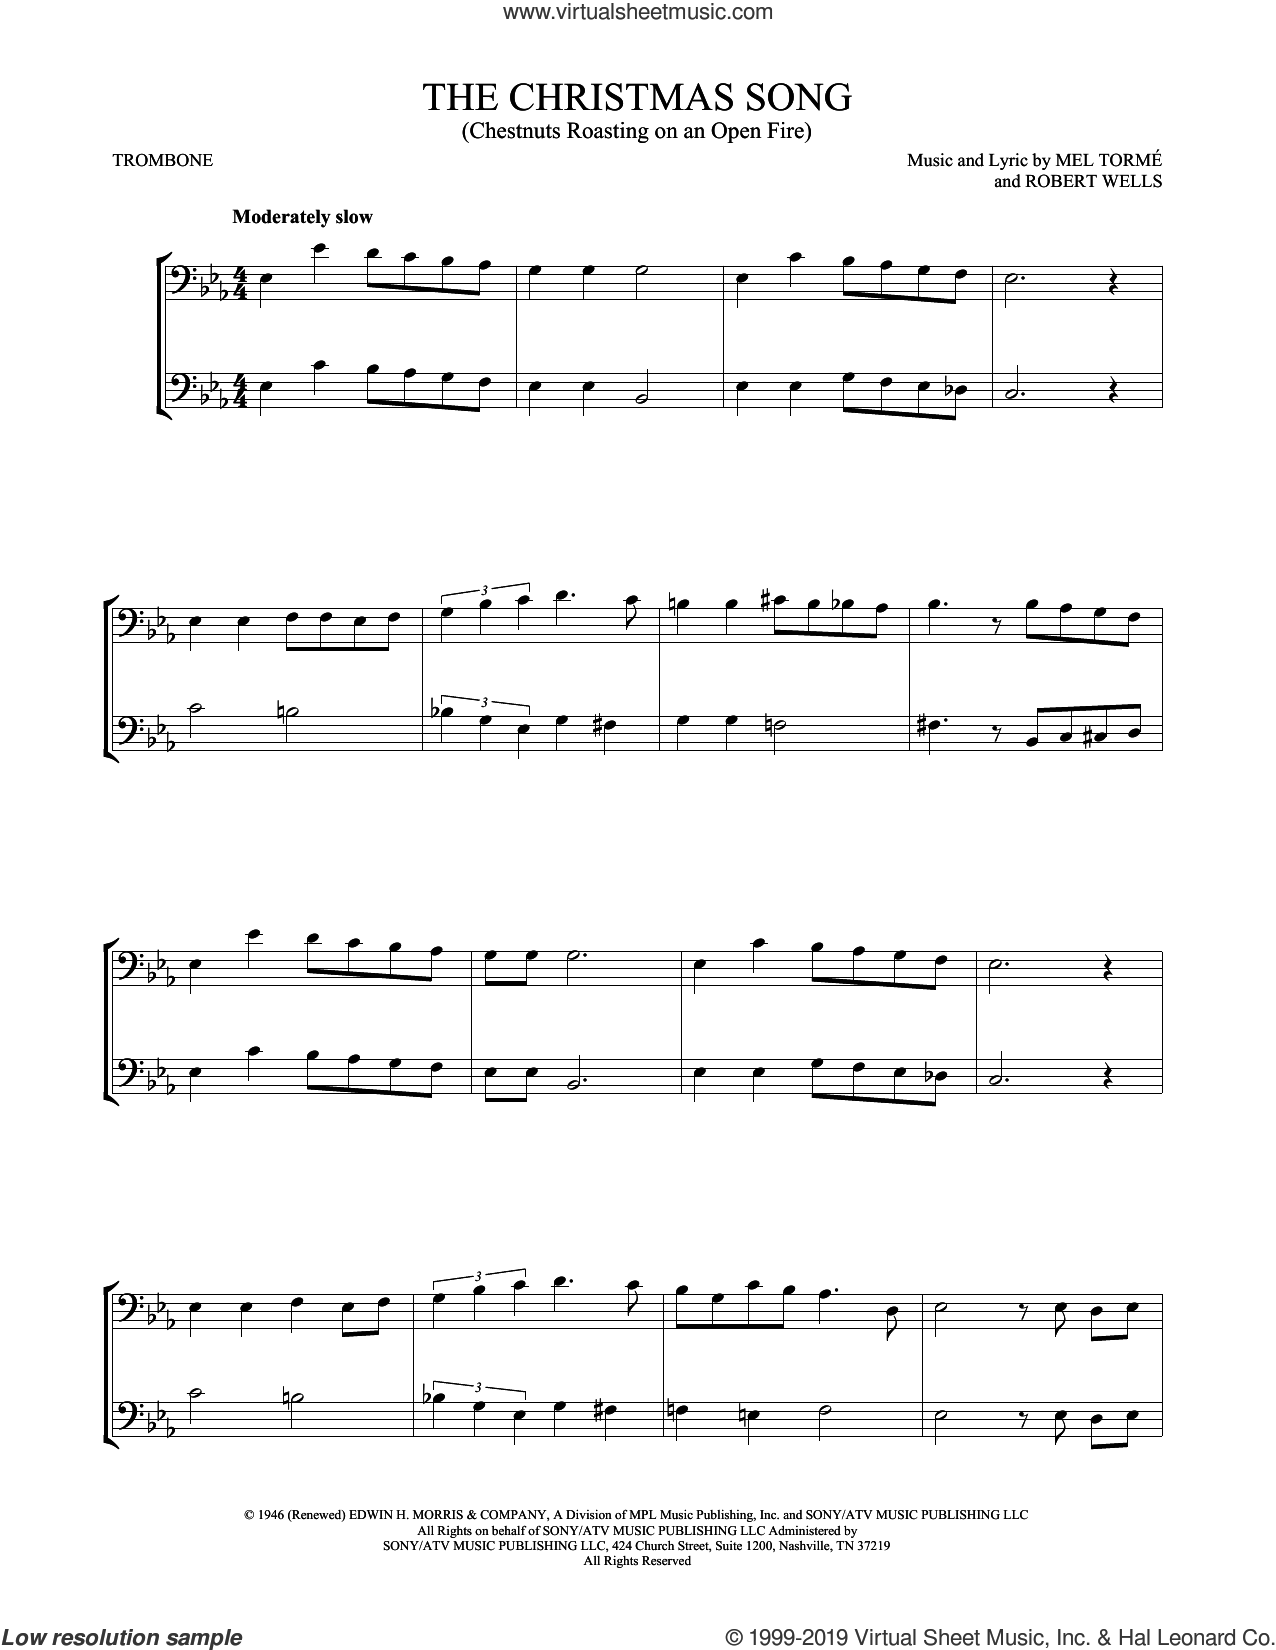 The Christmas Song (Chestnuts Roasting On An Open Fire) sheet music for two trombones (duet, duets) by Mel Torme and Robert Wells, intermediate skill level